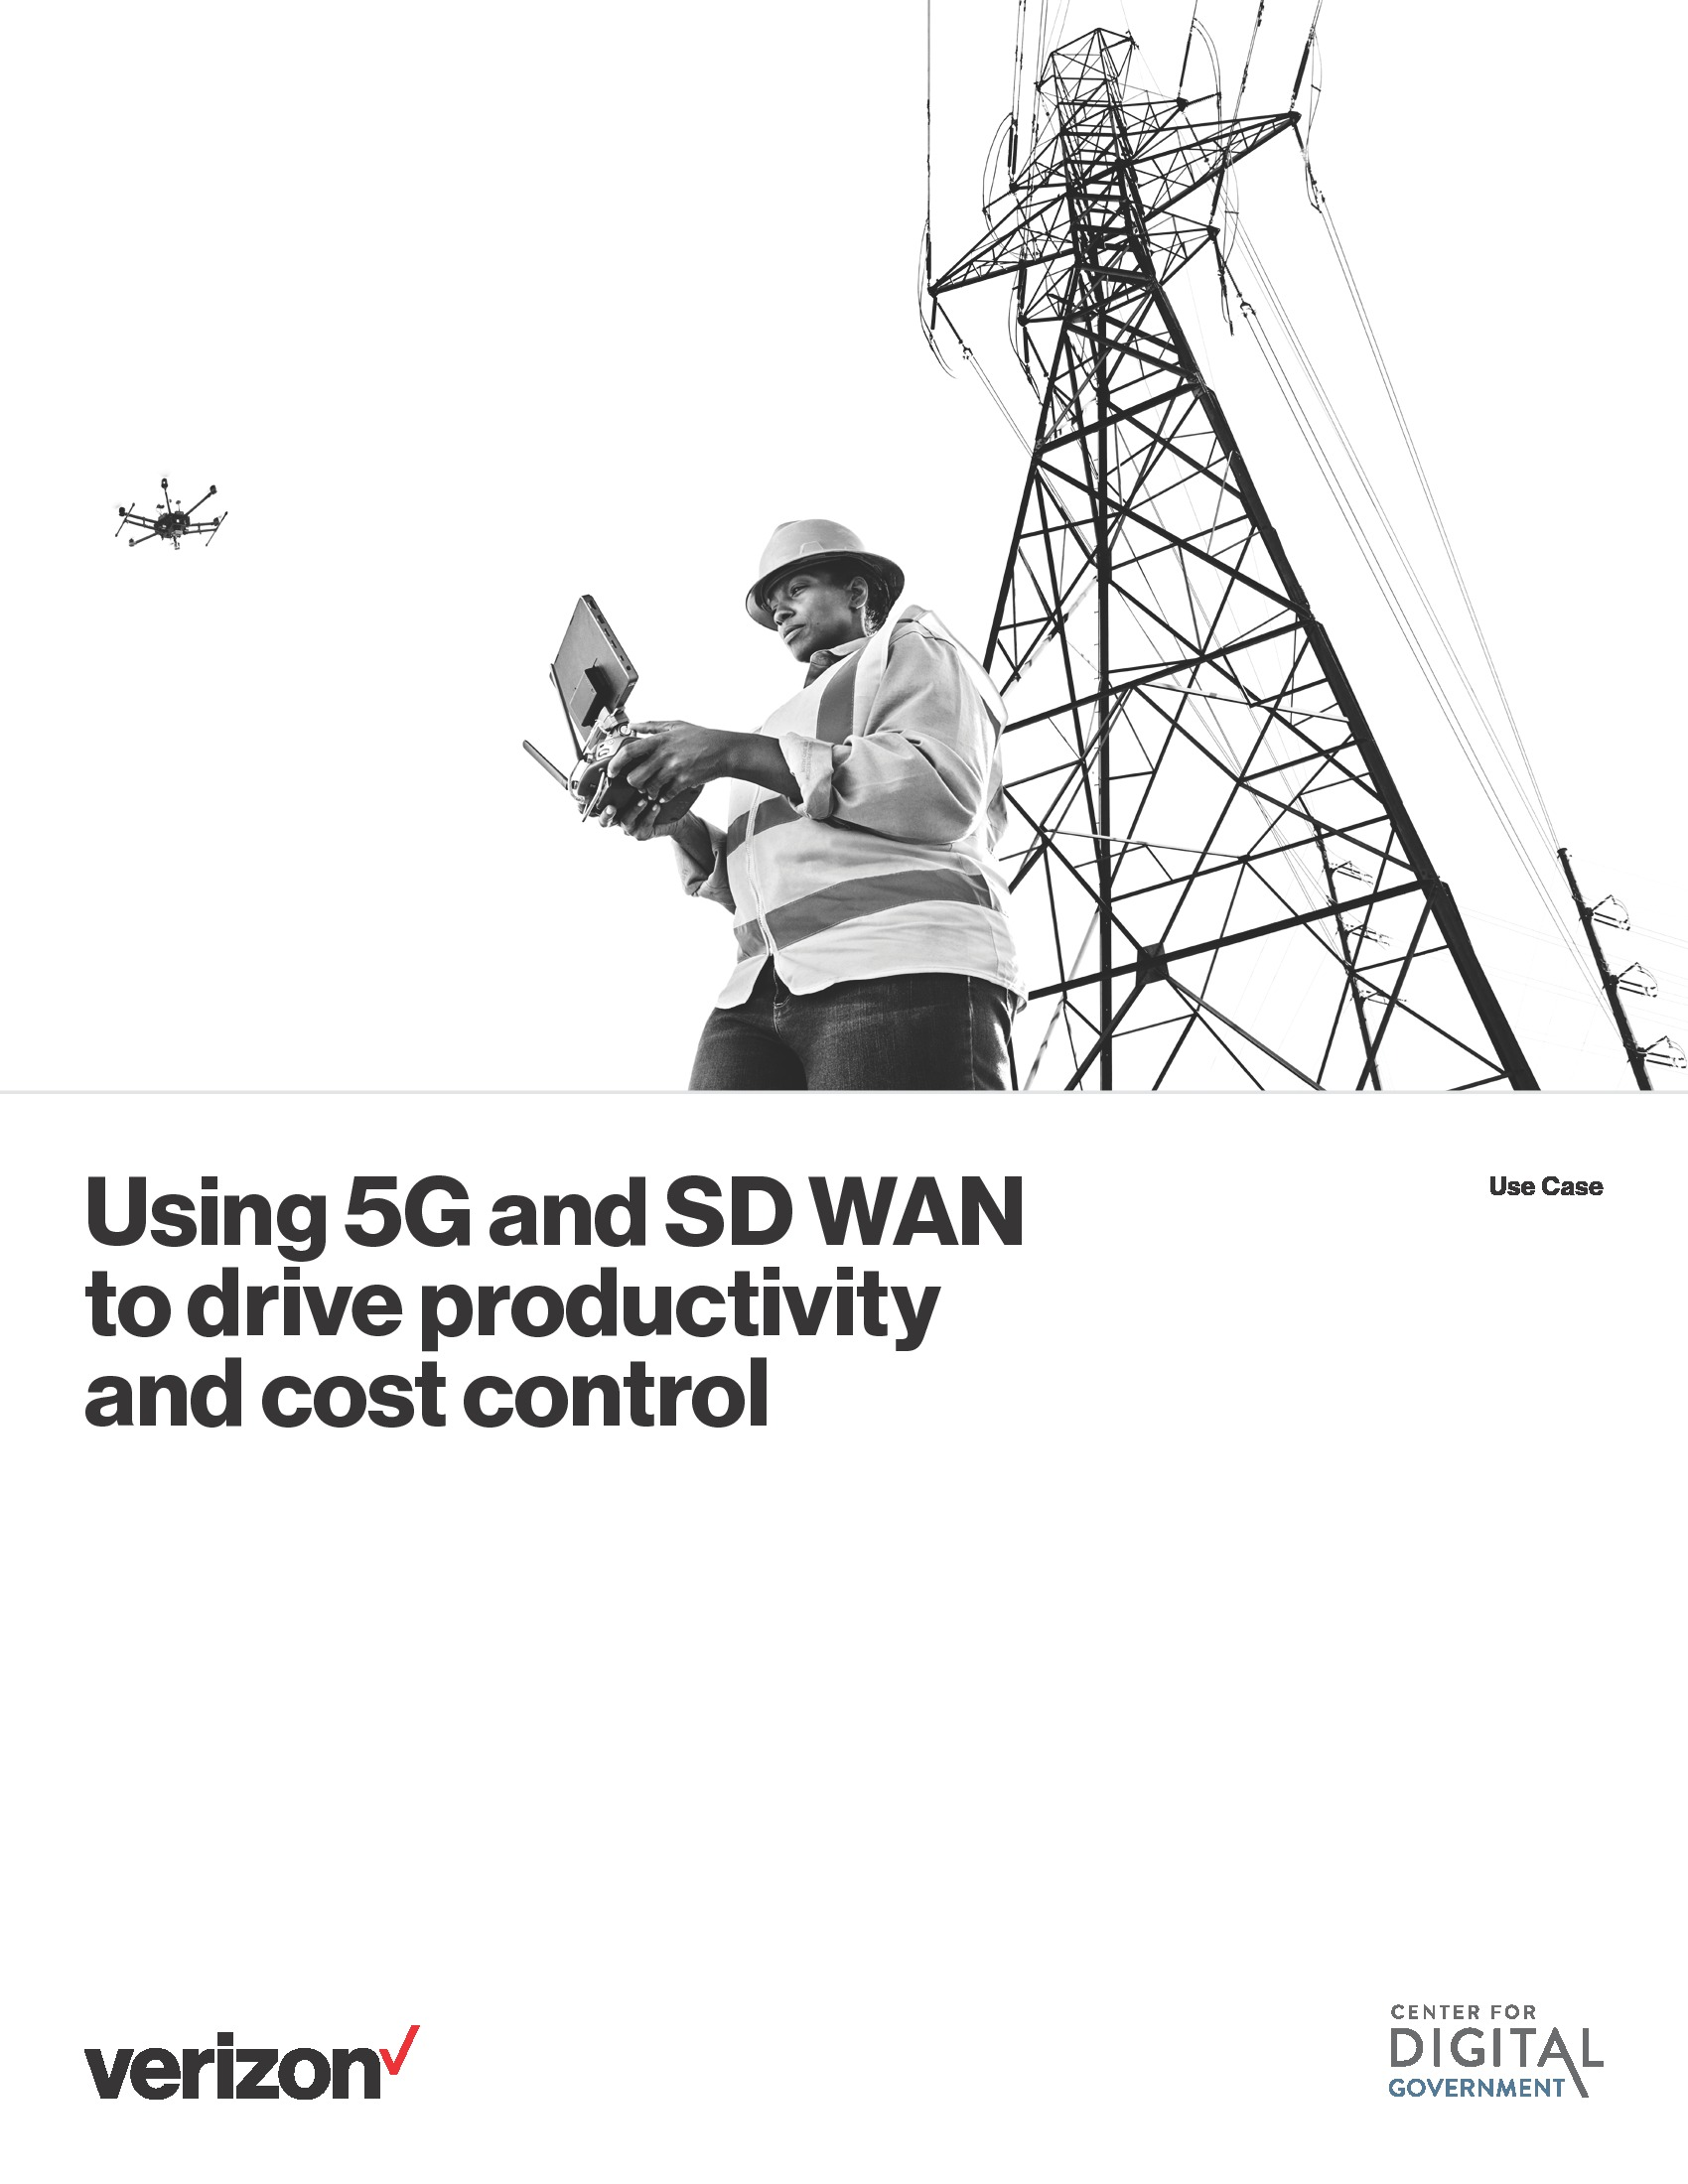 GT - Verizon - Client Supplied - 191120 - Using 5G and SD WAN